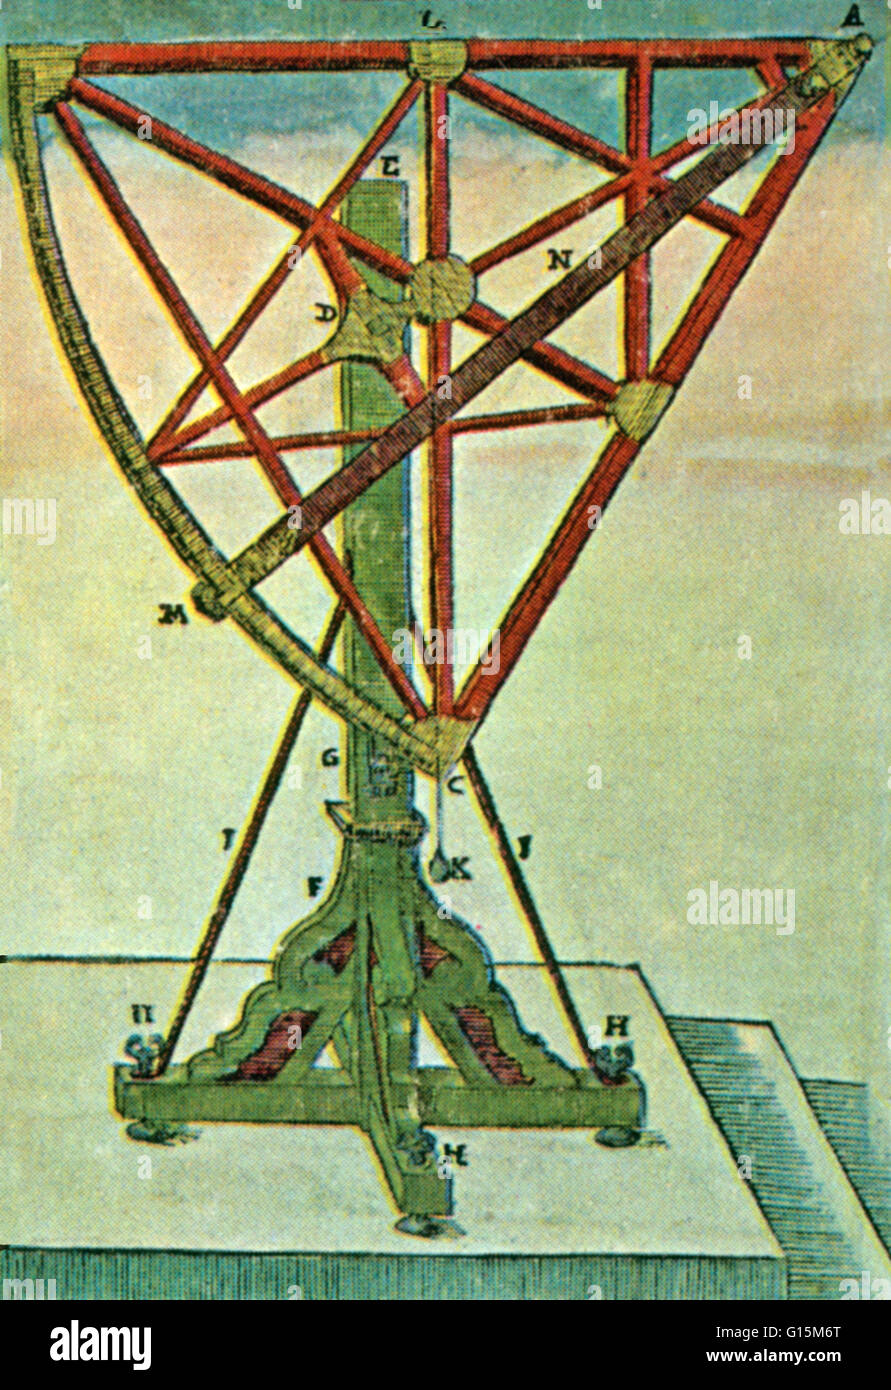 Tycho Brahe's sextant, which measured about six feet long on one side (AB). Tycho Brahe (1546-1601) was a Danish - Stock Image